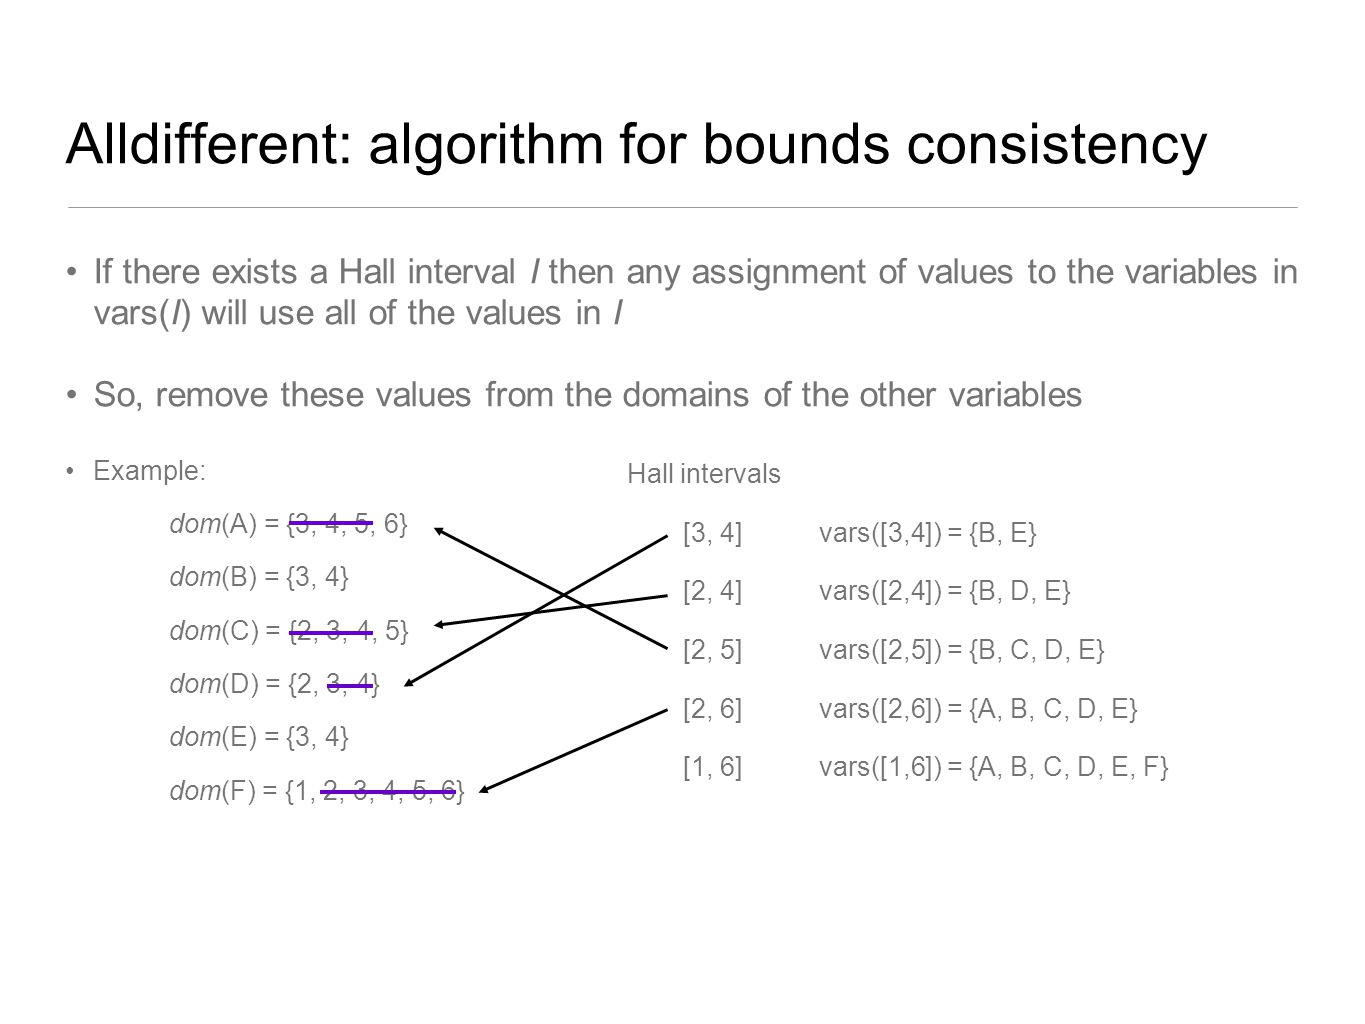 Alldifferent: algorithm for bounds consistency